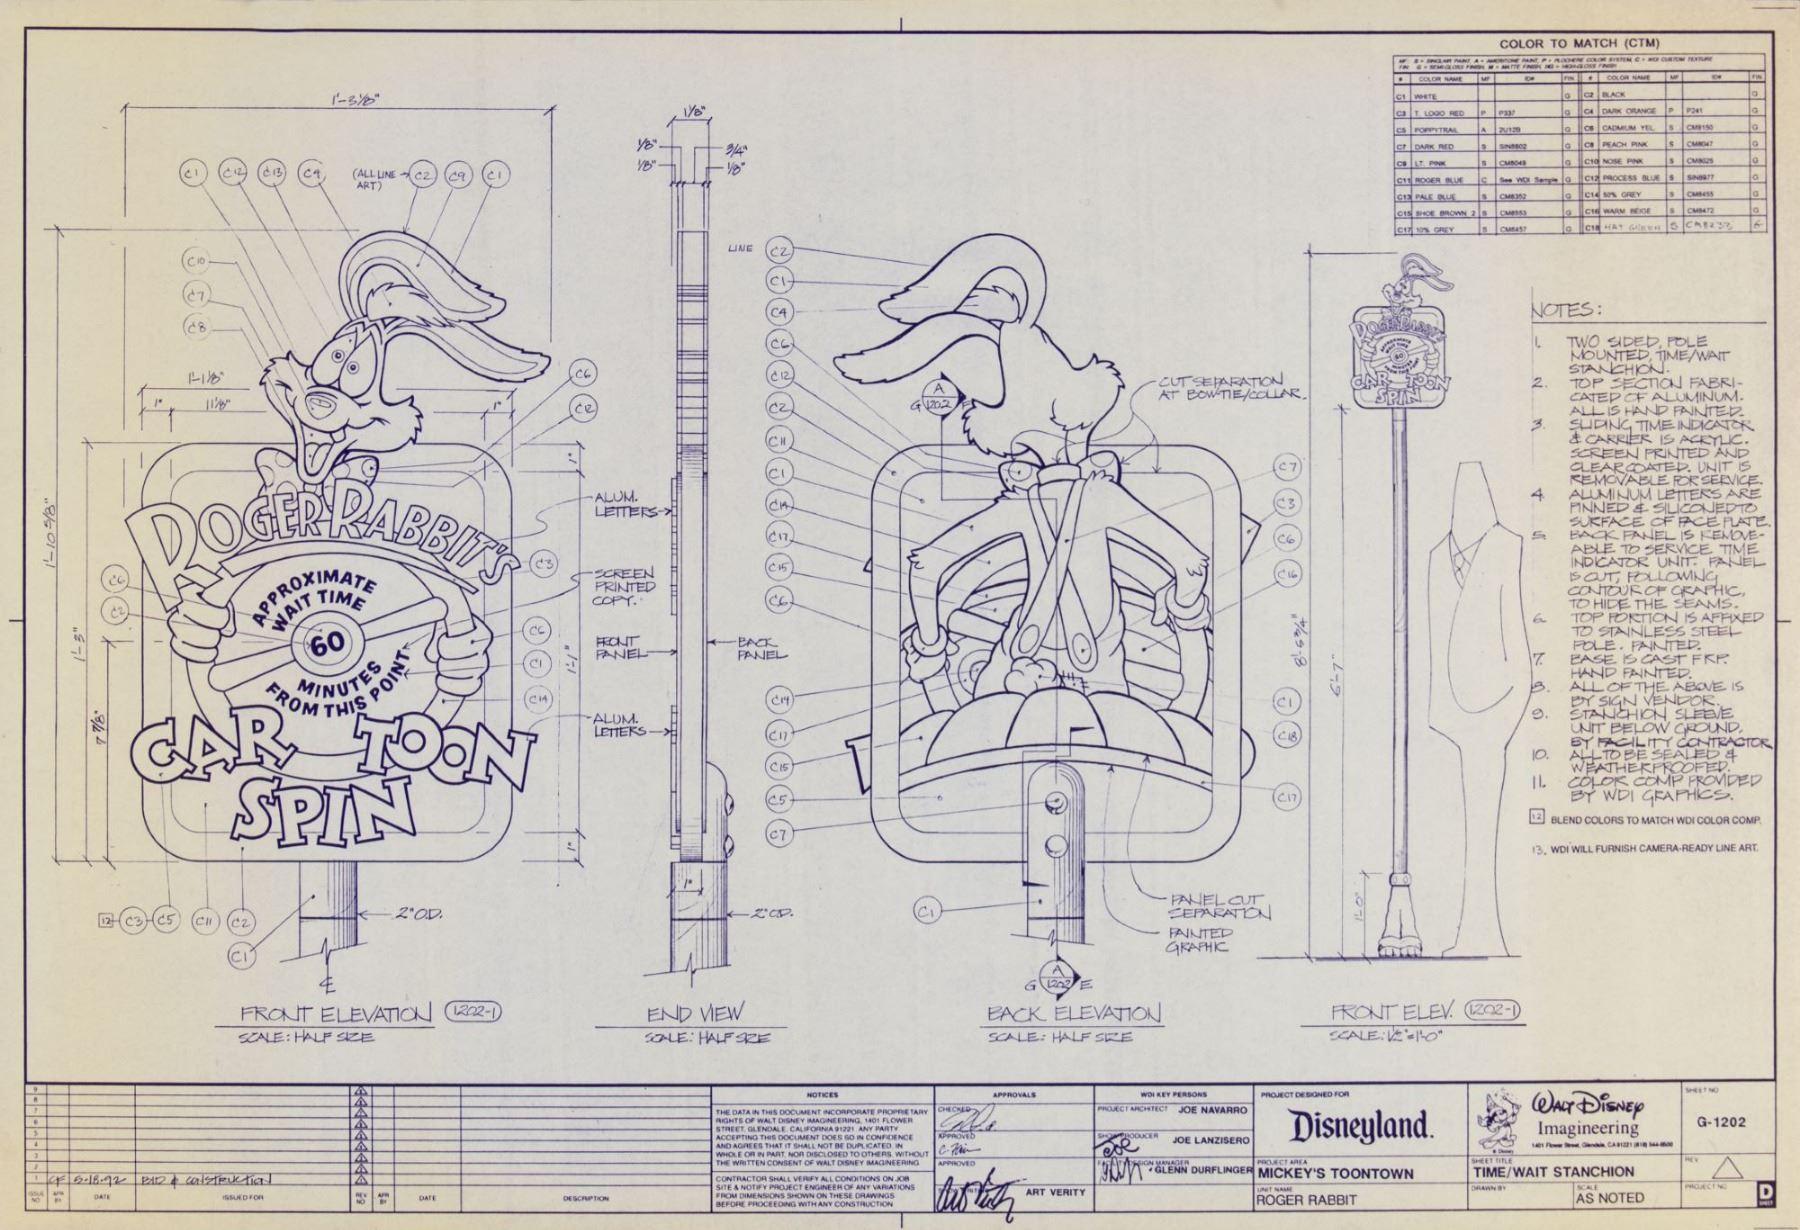 small resolution of  image 4 collection of 4 roger rabbit s car toon spin blueprints